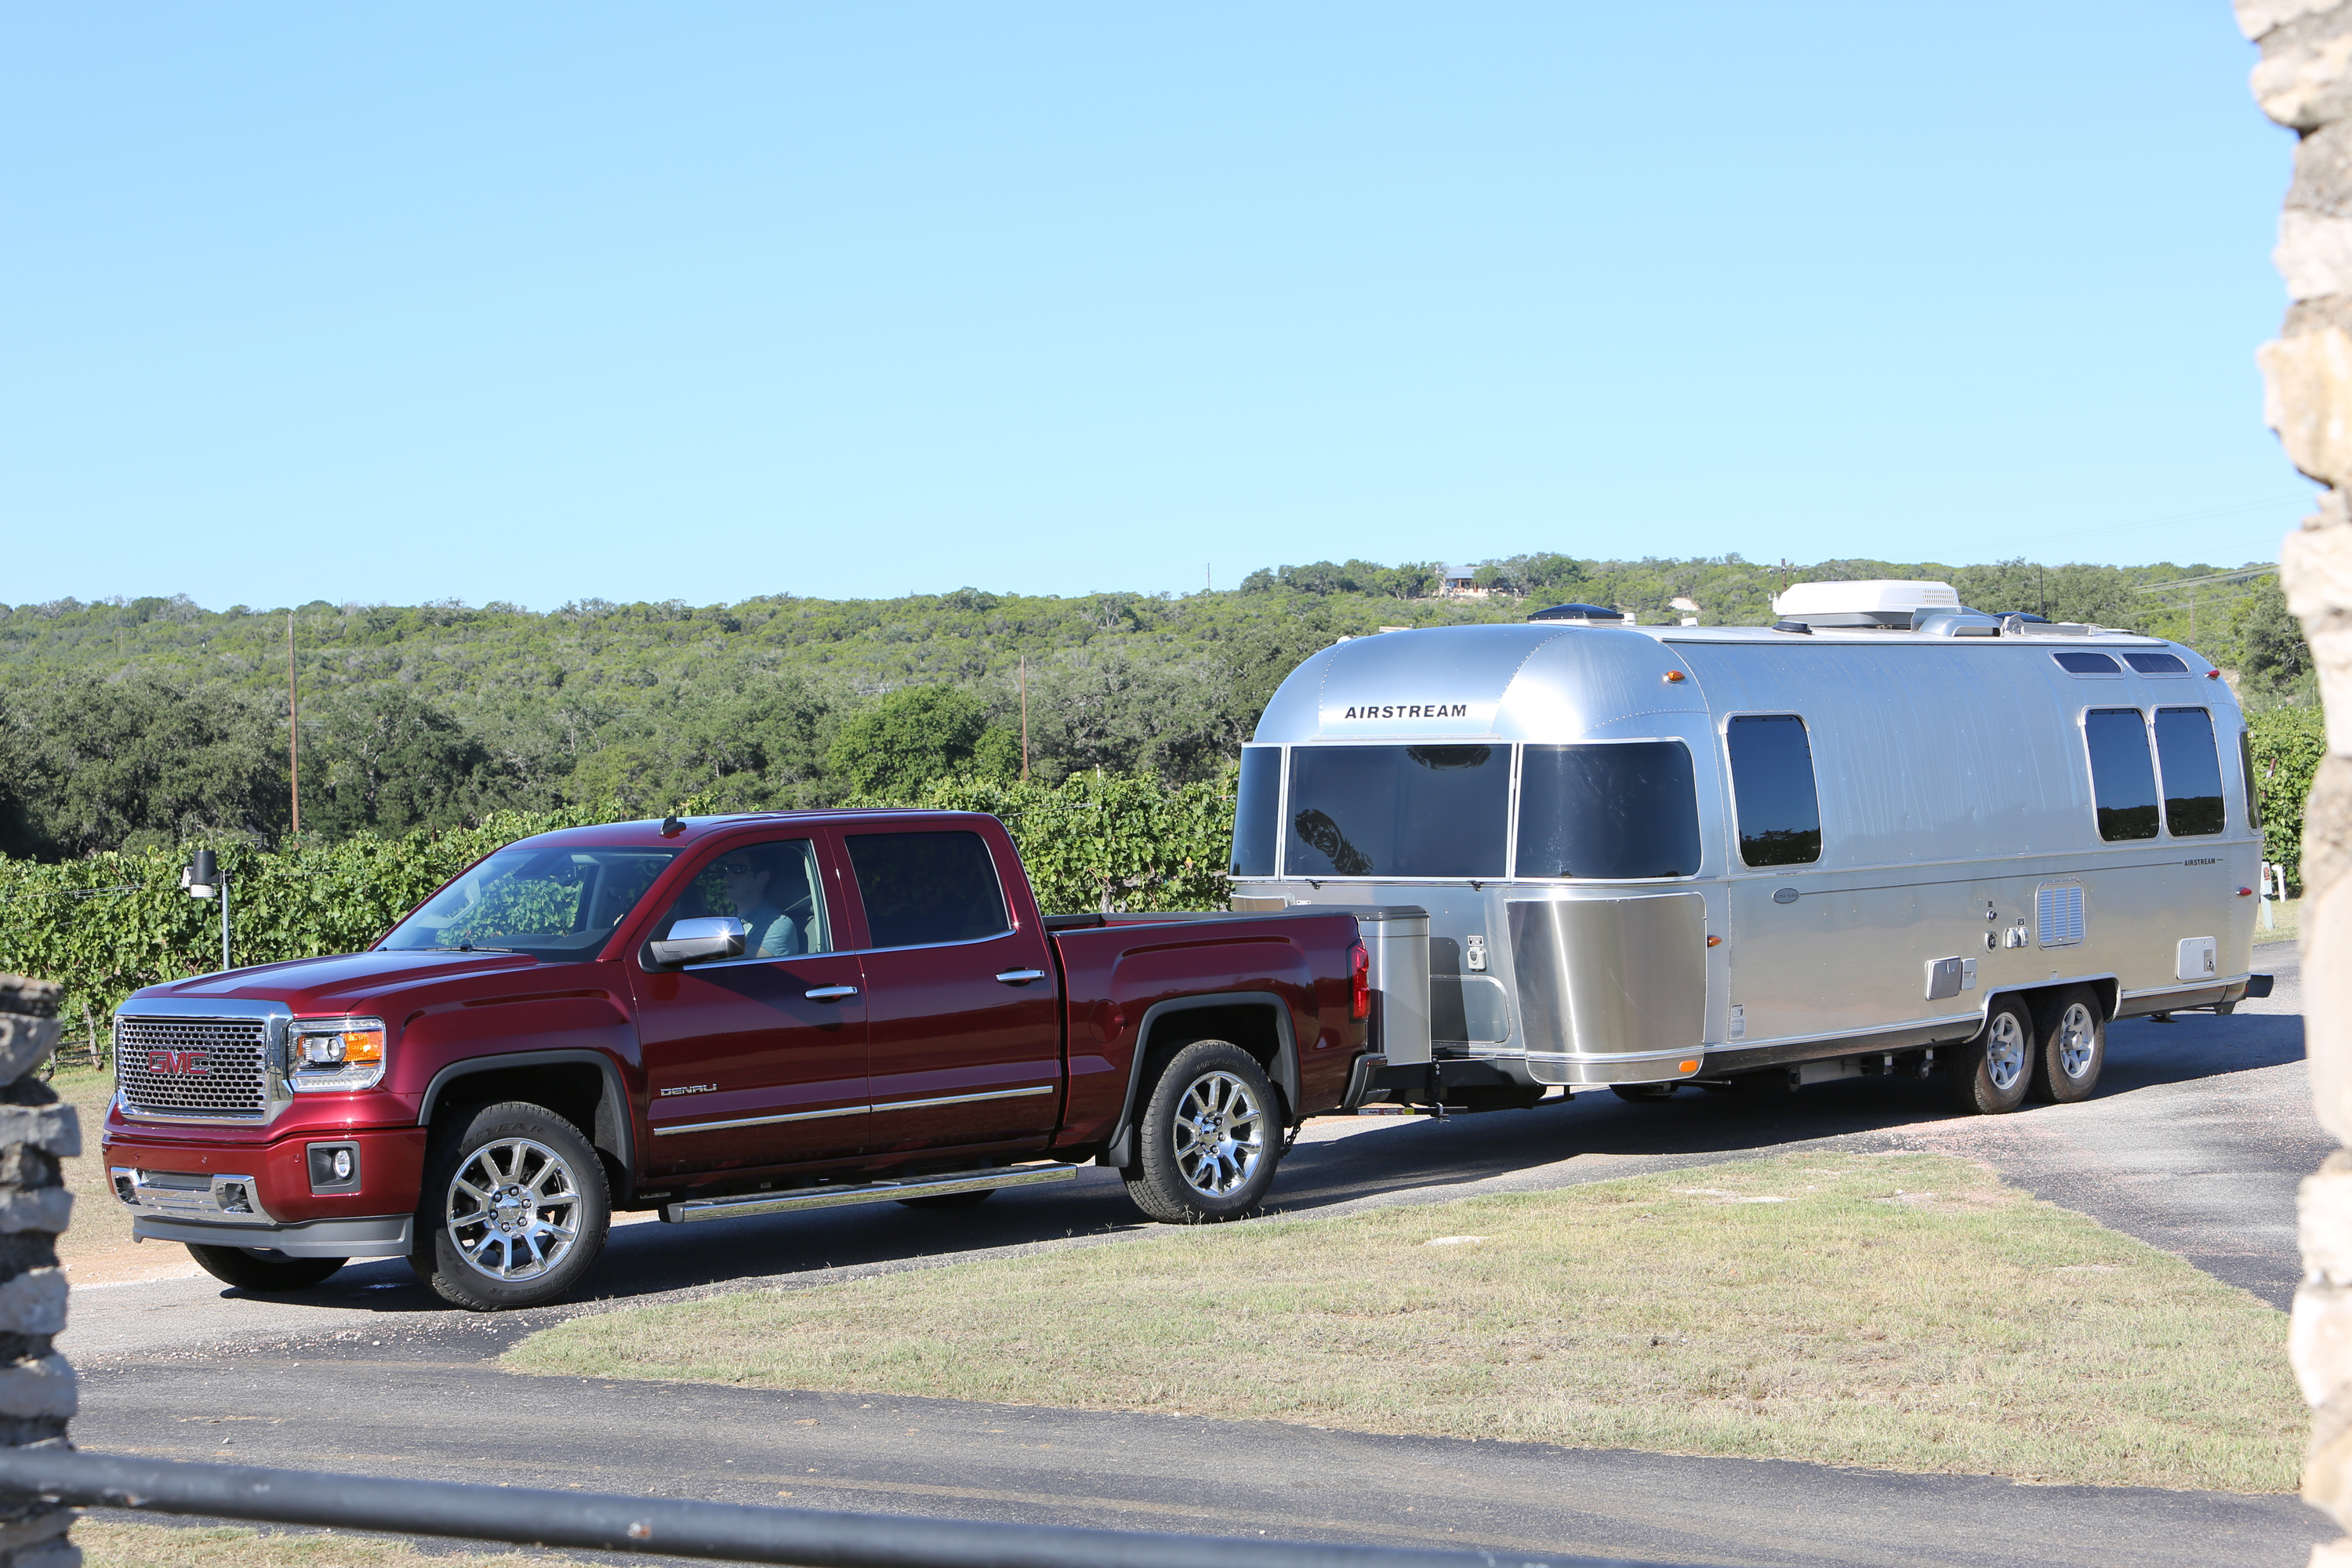 2015 Gmc Sierra 1500 Maintains 12 000 Lb Max Trailering